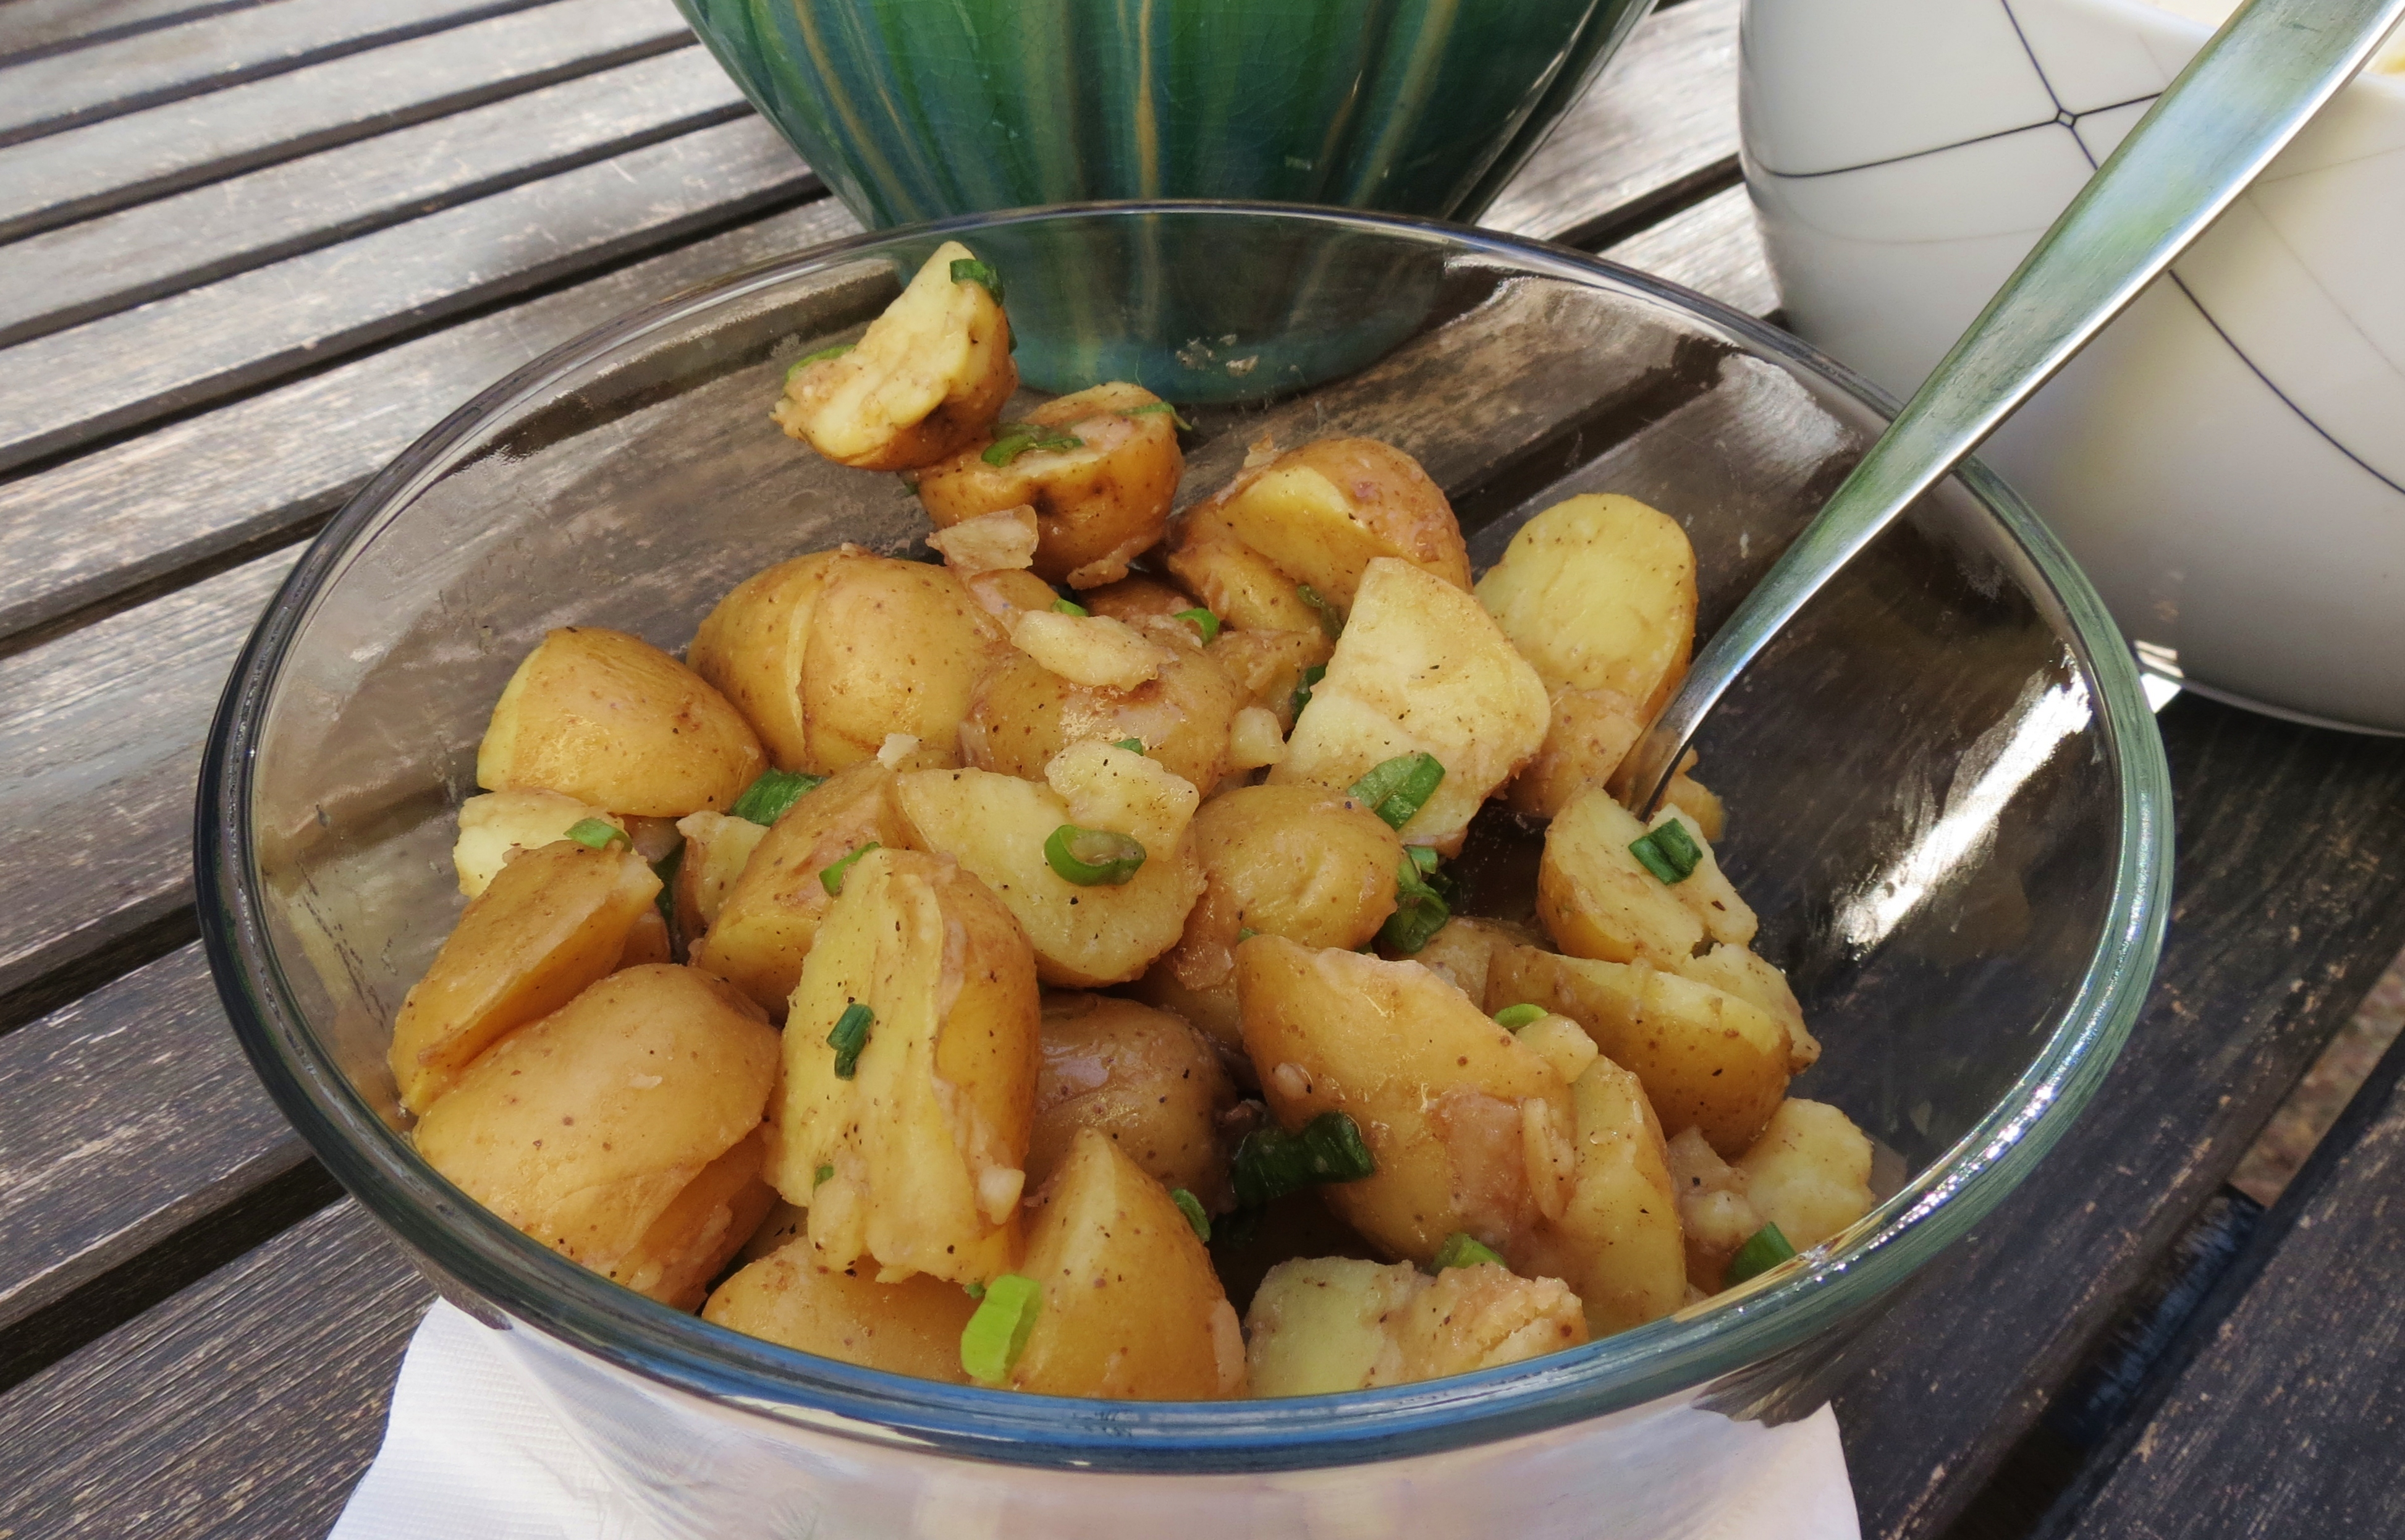 Potato Salad with Balsamic Dressing